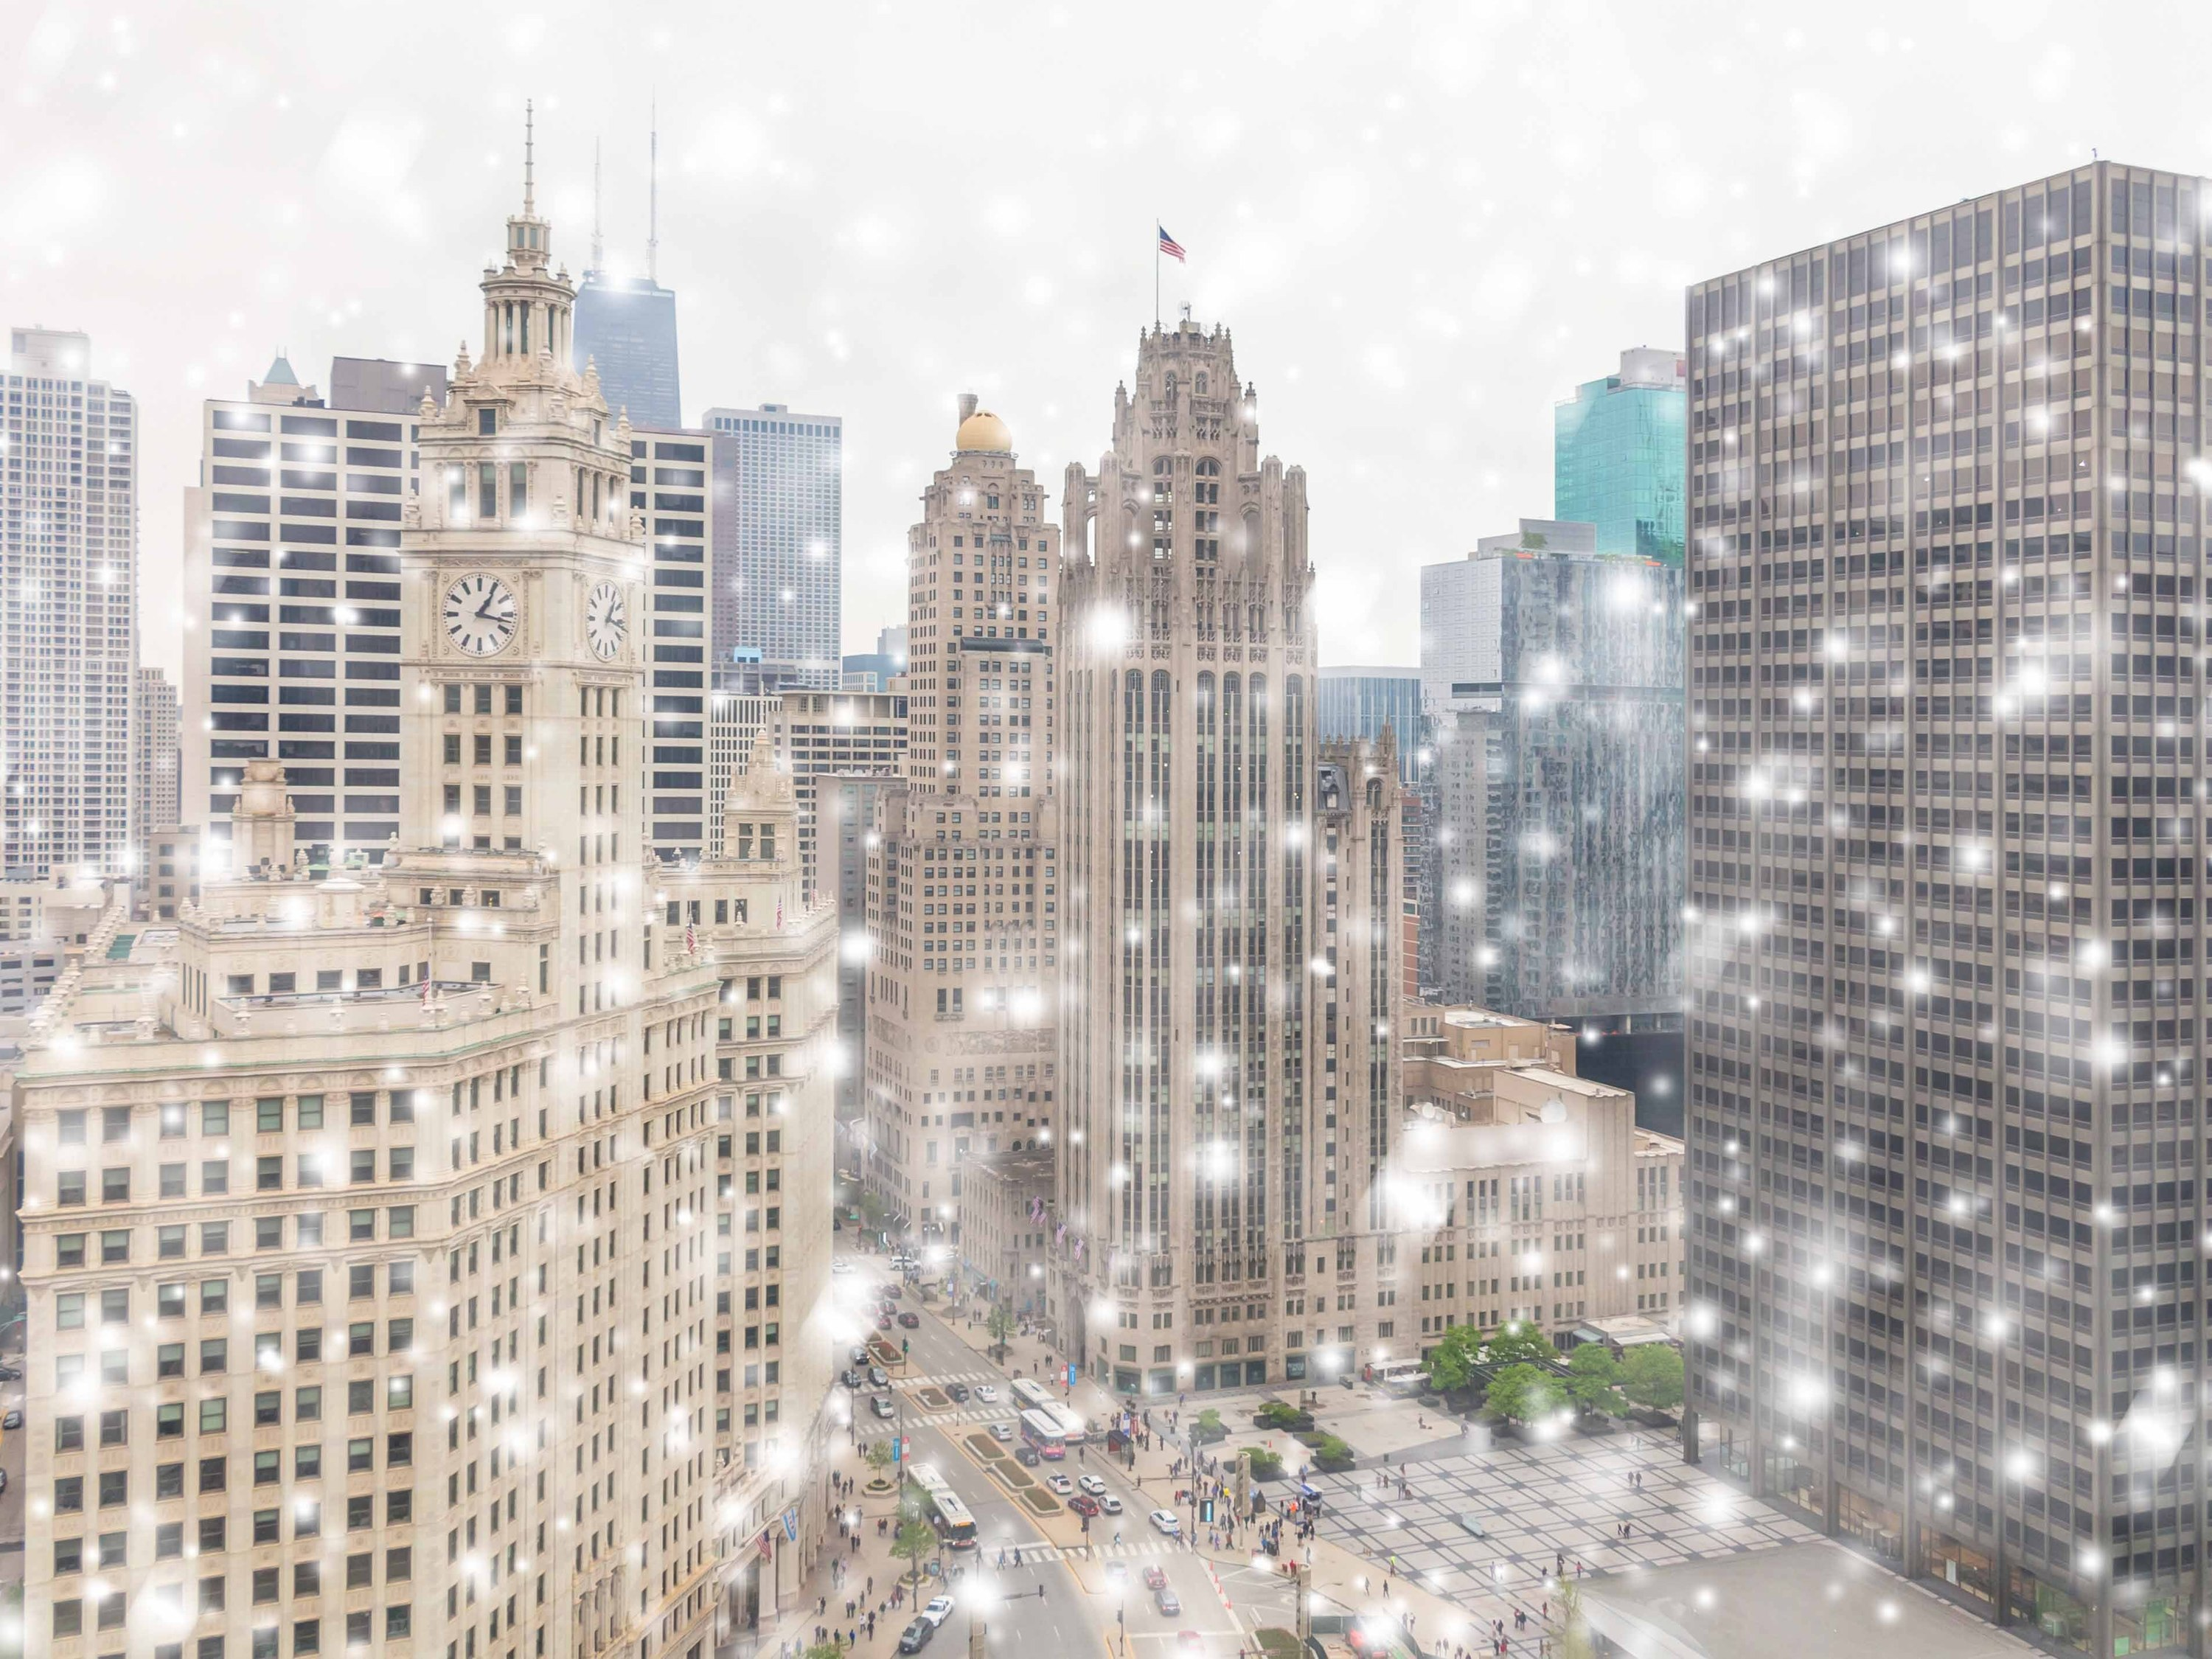 It's October and it's snowing in Chicago, which isn't as unusual as it sounds